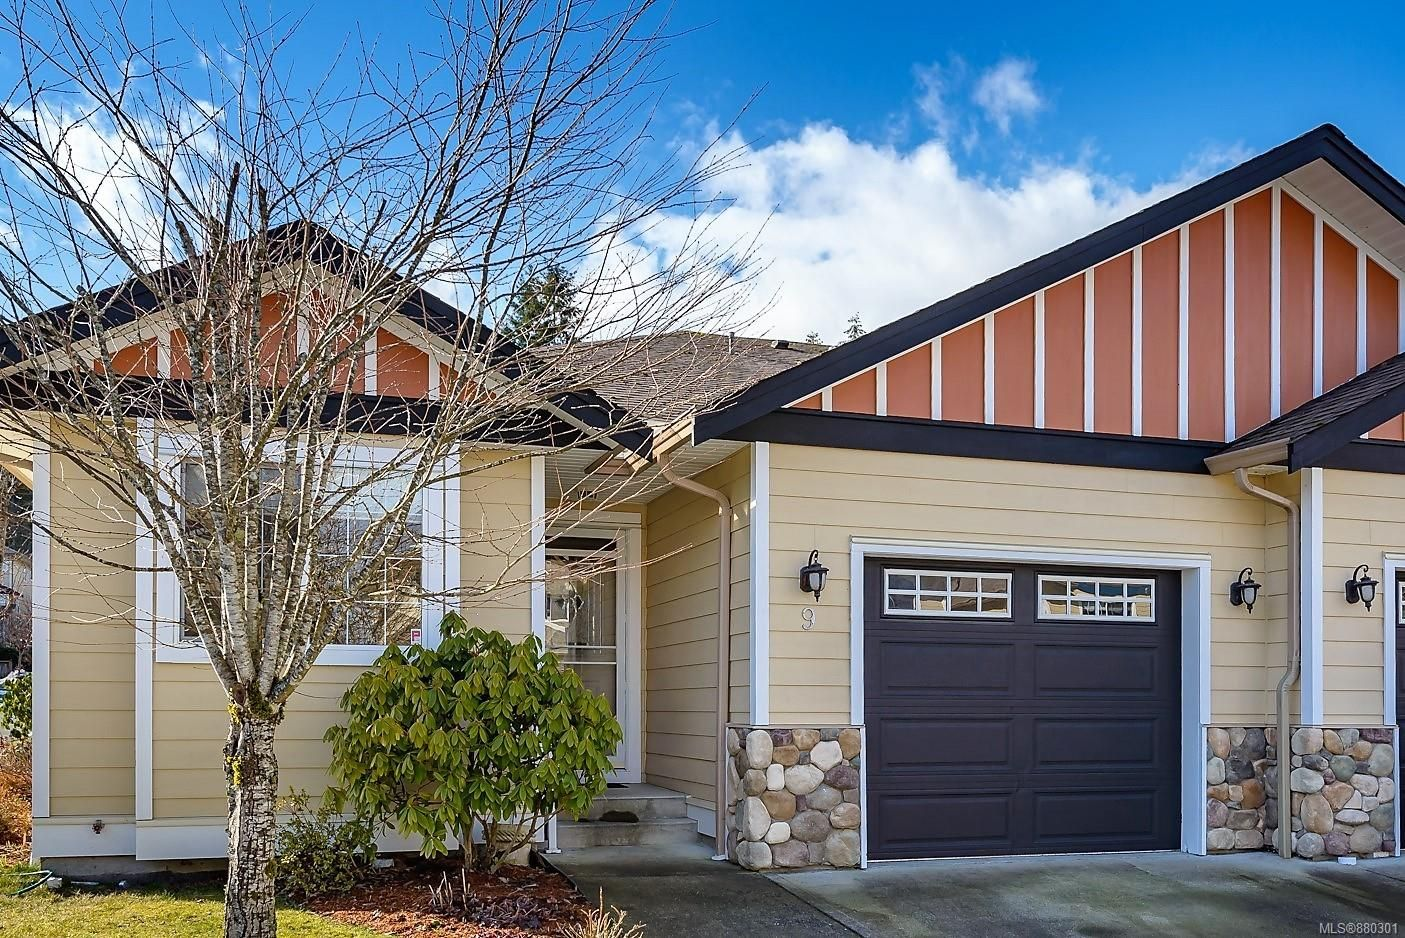 Main Photo: 9 2728 1st St in : CV Courtenay City Row/Townhouse for sale (Comox Valley)  : MLS®# 880301